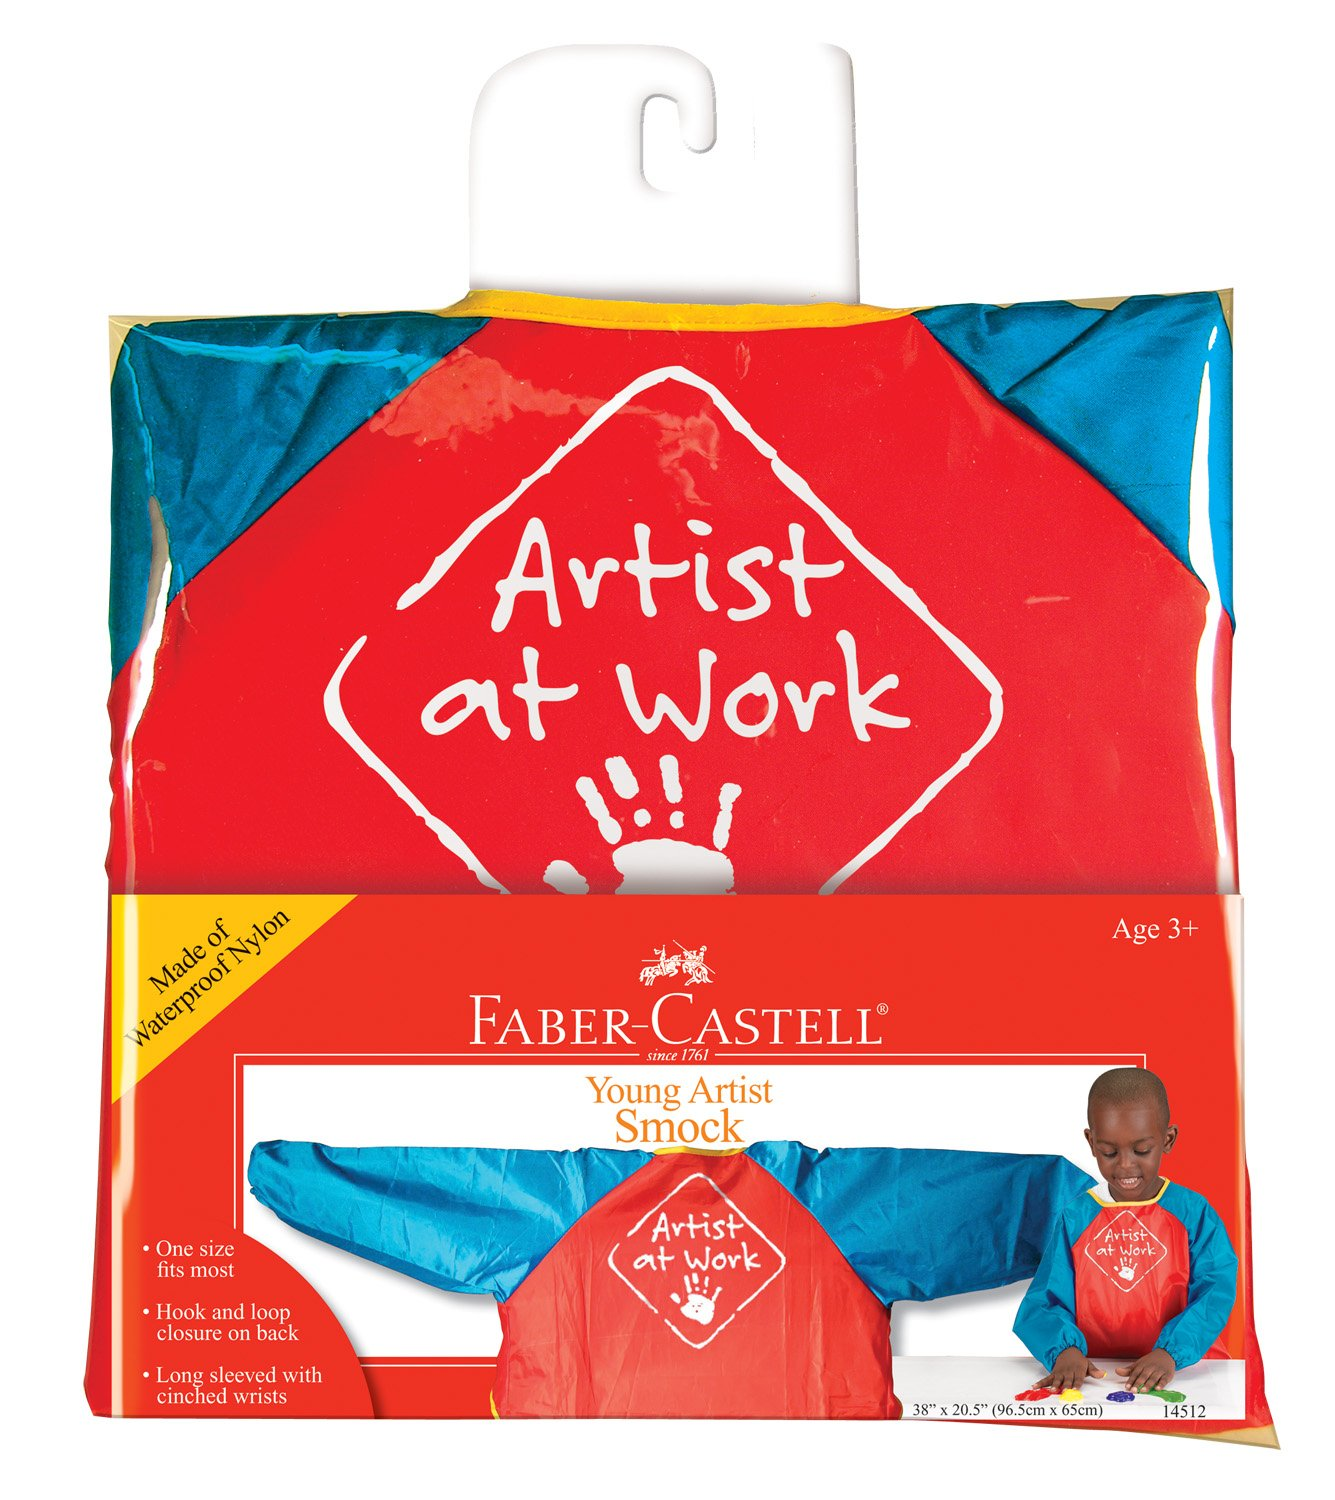 Faber-Castell Young Artist Smock Washable Art Smock for Kids Faber Castell 14512